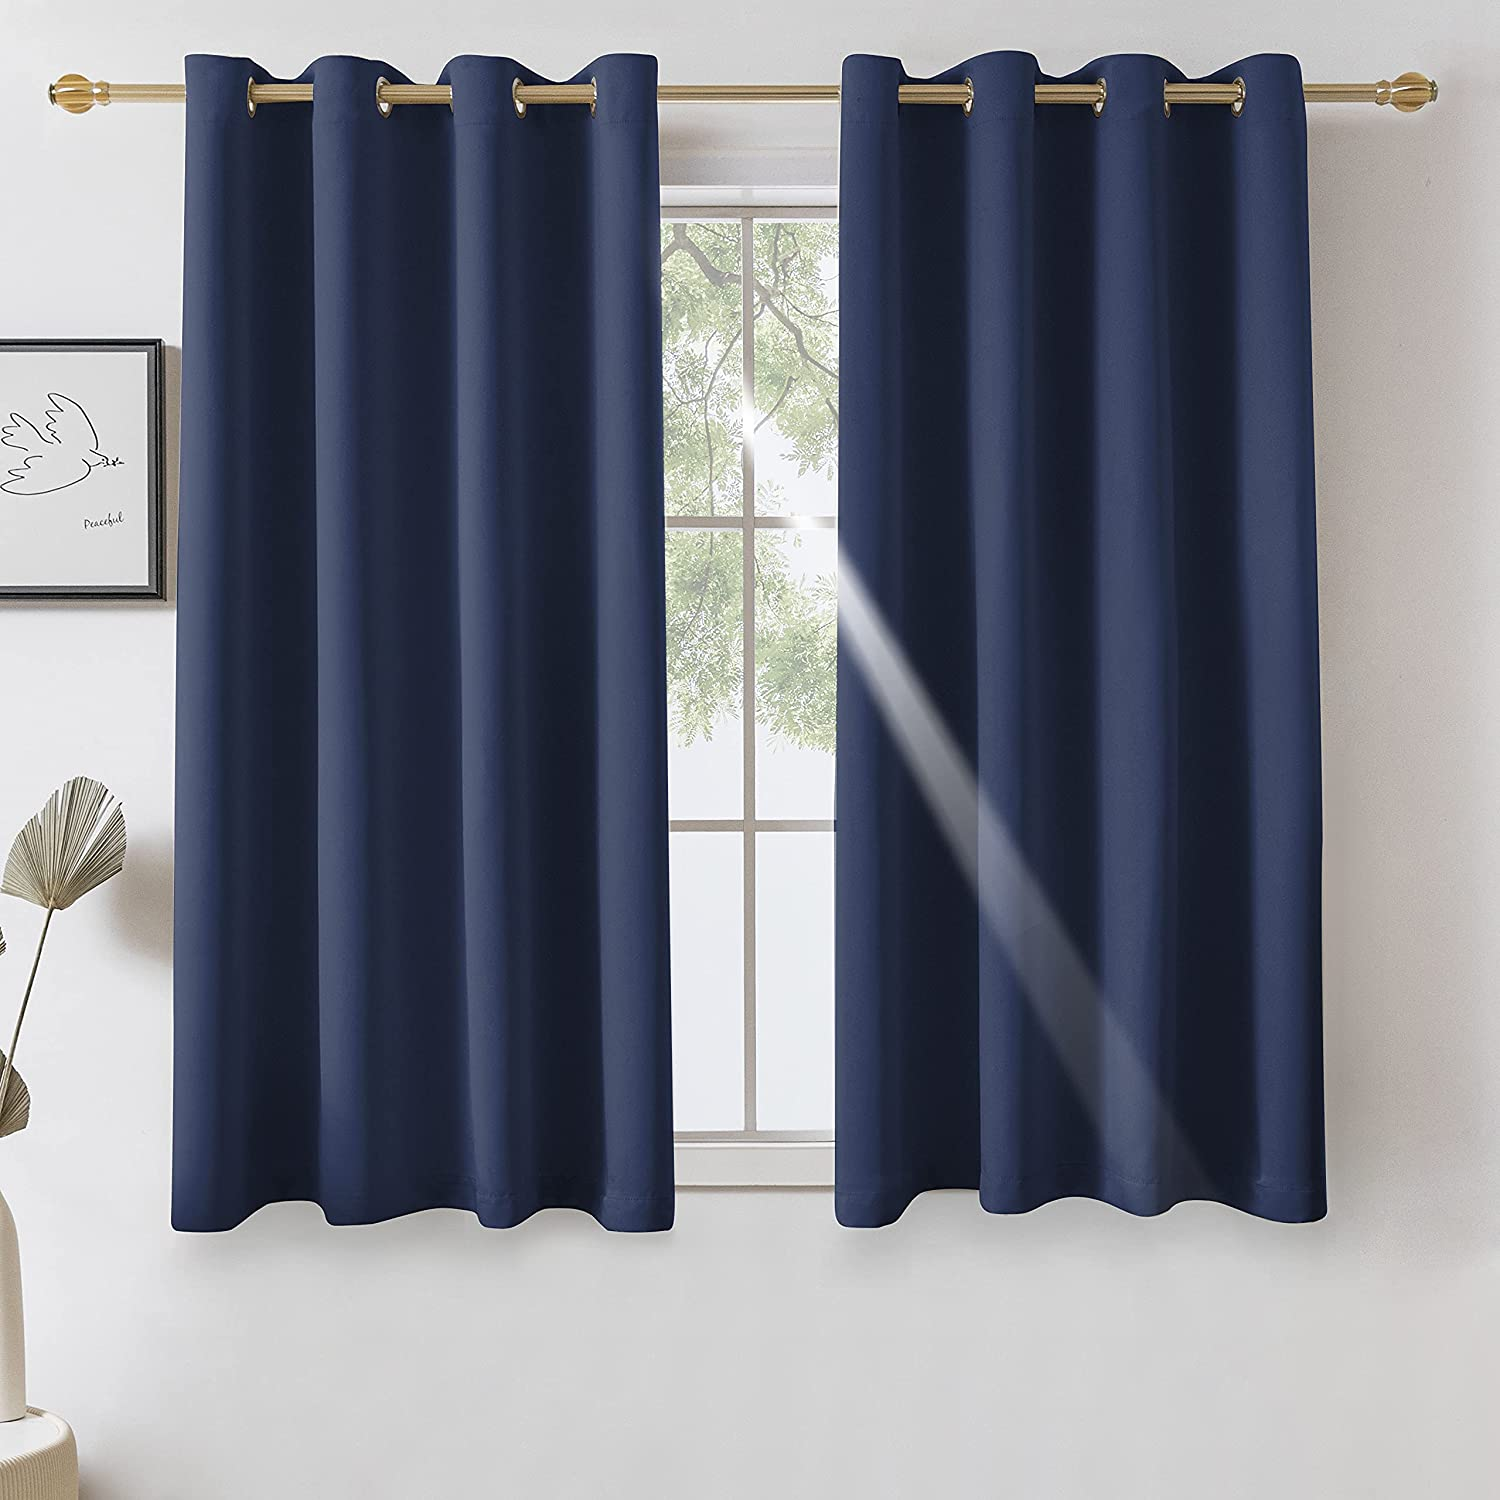 VANASEE Blackout Curtains for Bedroom Grommet Insulate Thermal Milwaukee Mall - Ranking TOP1